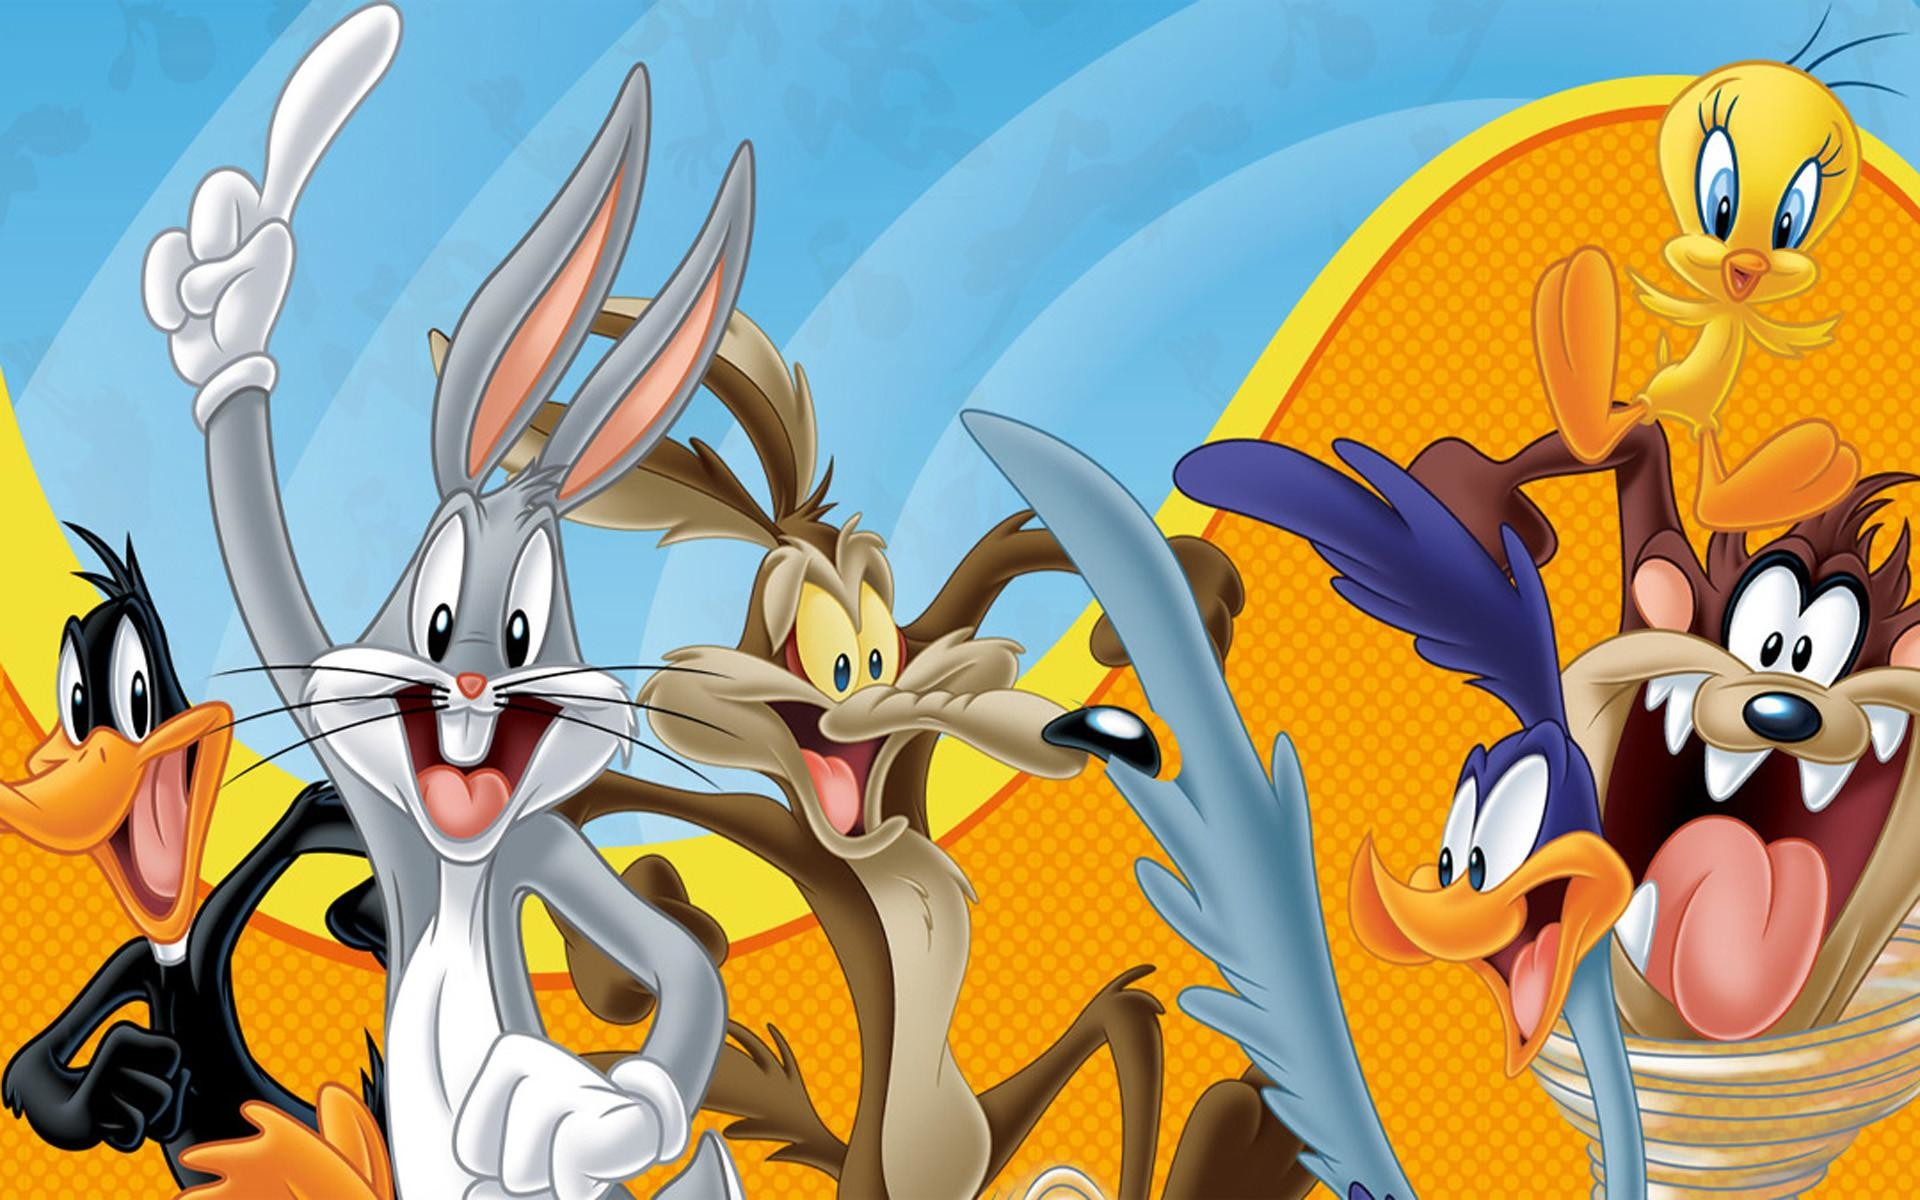 Res: 1920x1200, looney tunes wallpaper hd #364653